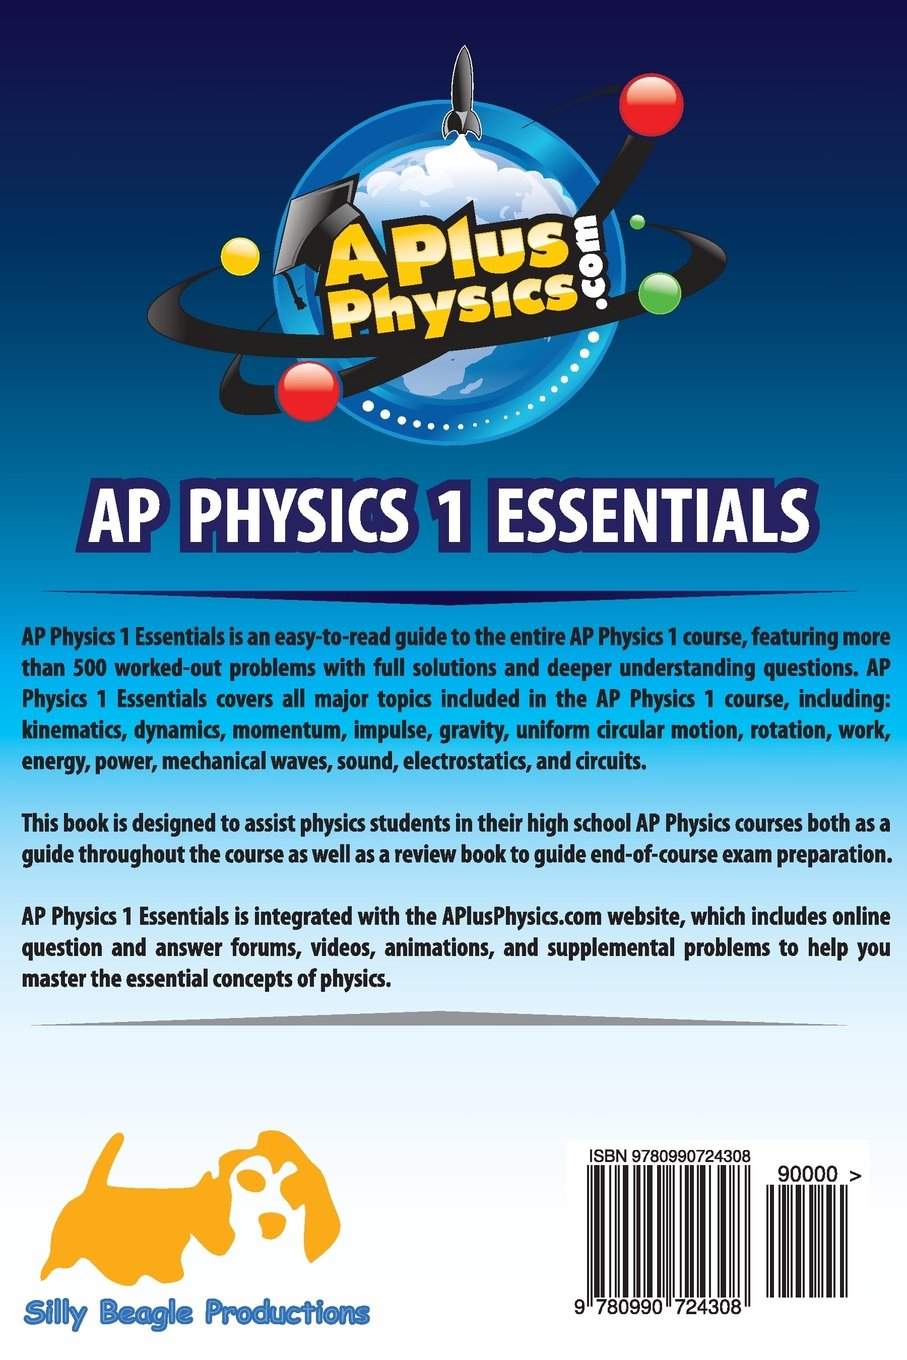 ap physics 1 essentials an aplusphysics guide dan fullerton ap physics 1 essentials an aplusphysics guide dan fullerton 9780990724308 books amazon ca